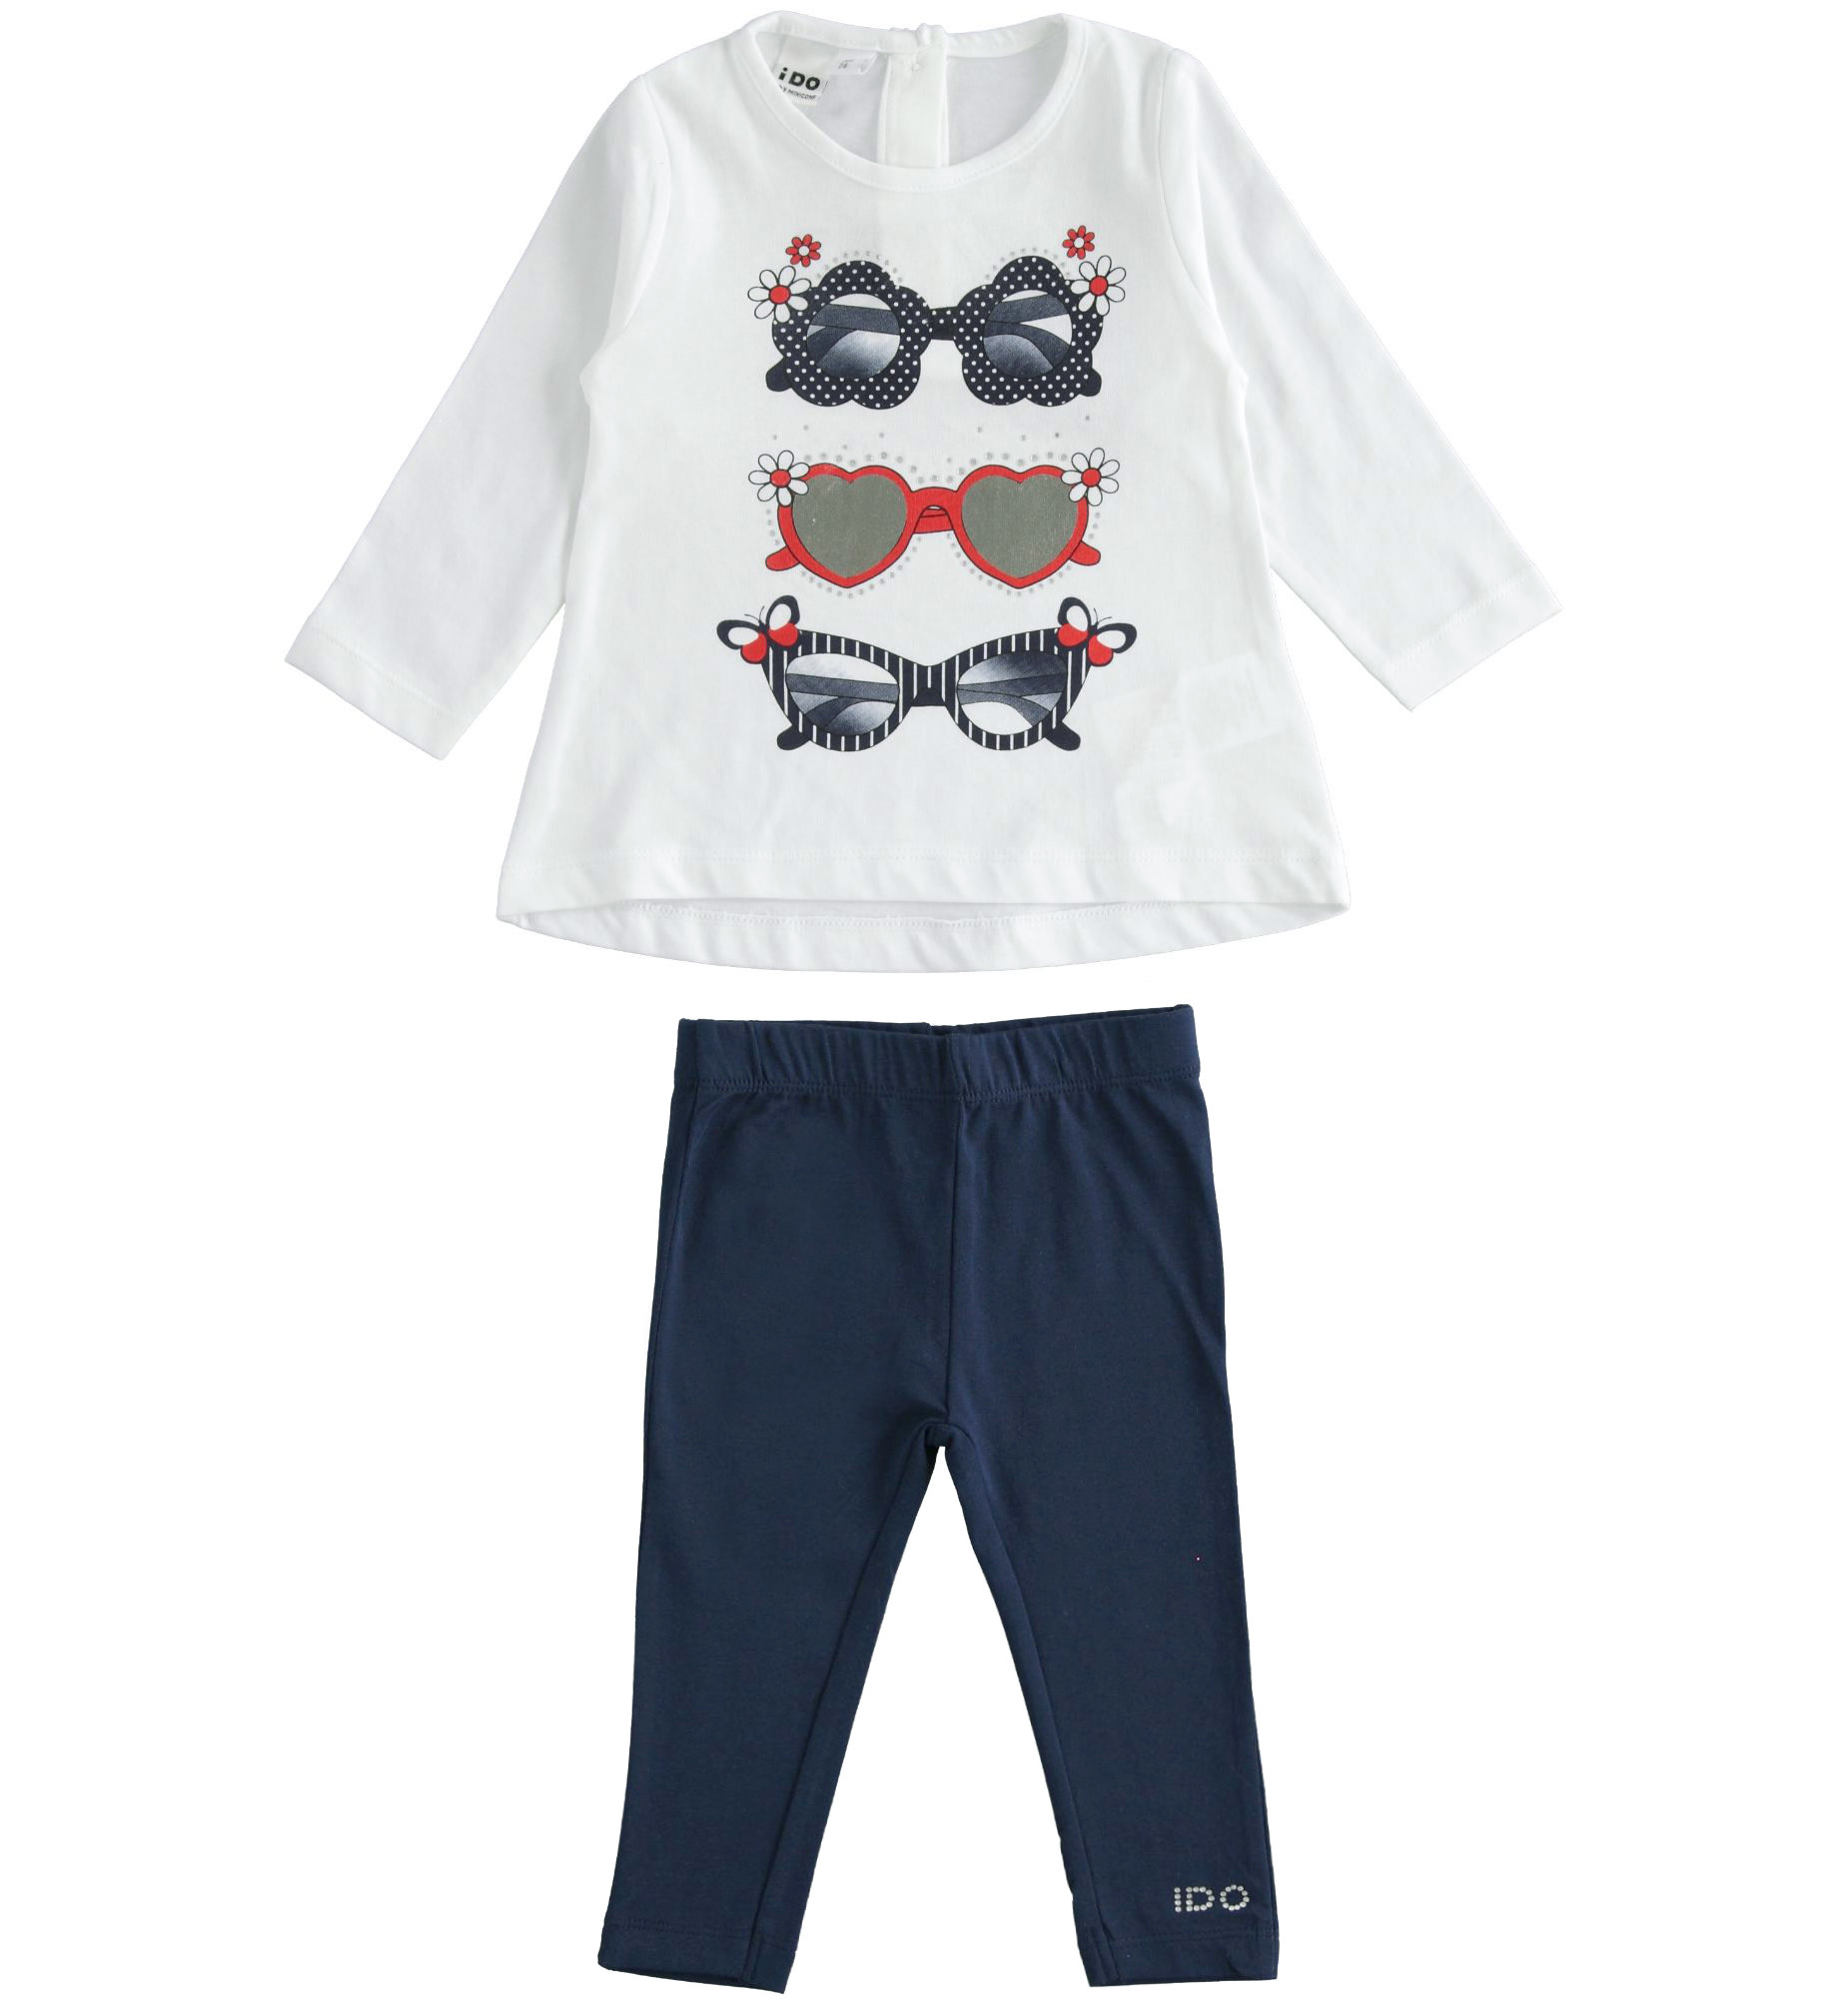 Ido IDo J273 Trio Sunglasses Long Sleeve t-shirt & Legging Set